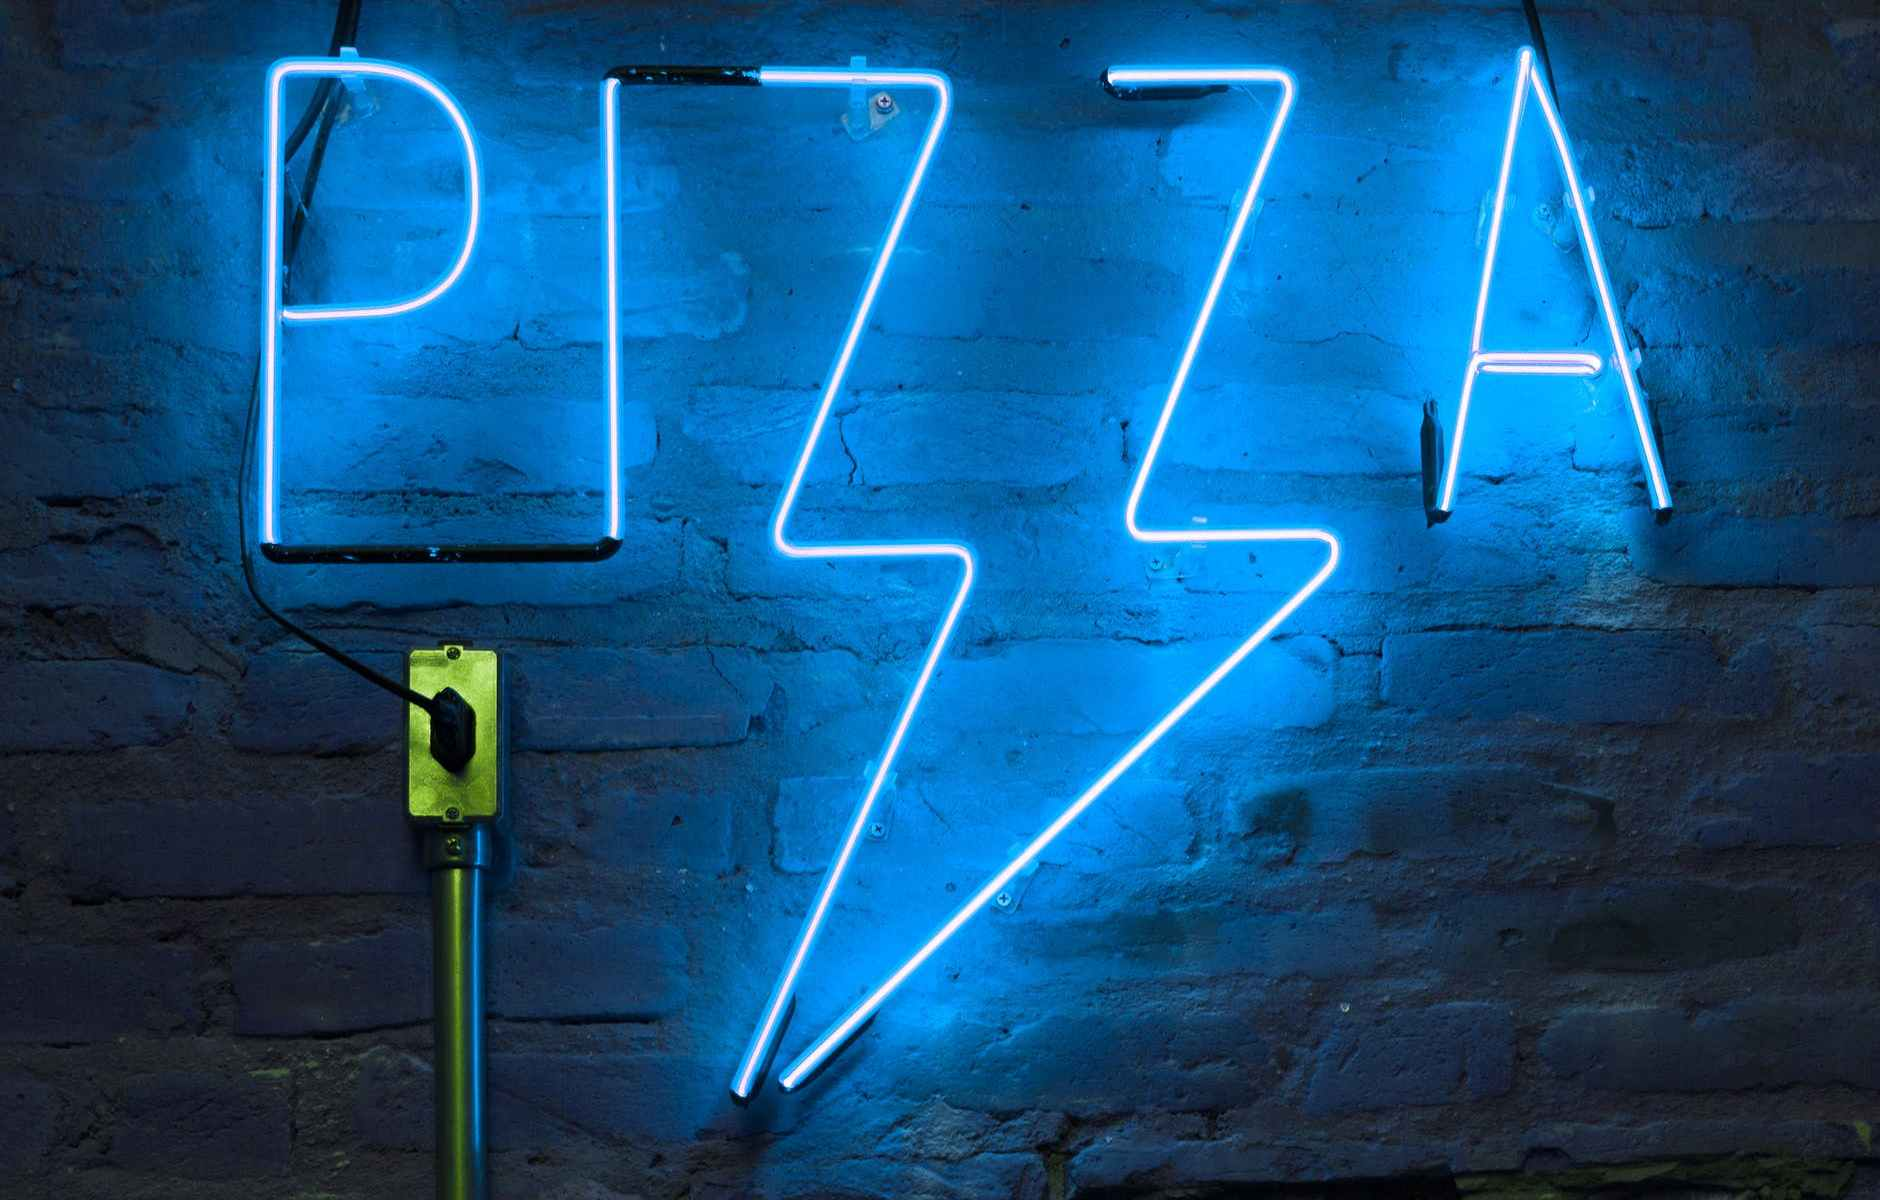 blue pizza neon signage turned on